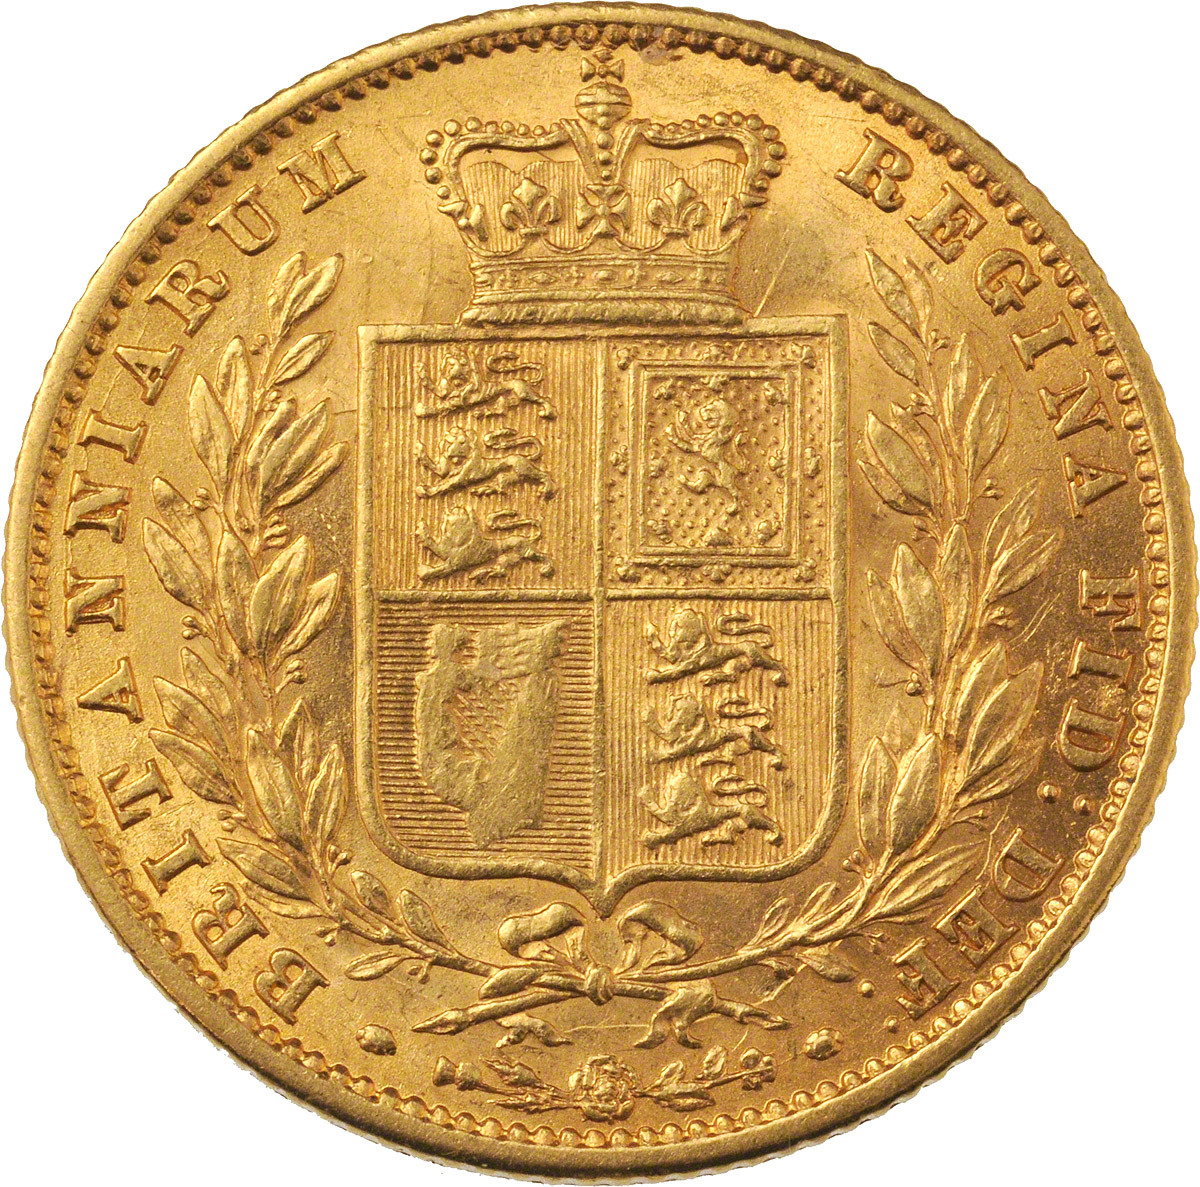 Reverse Face of a 1859-Ansell-Gold-Sovereign